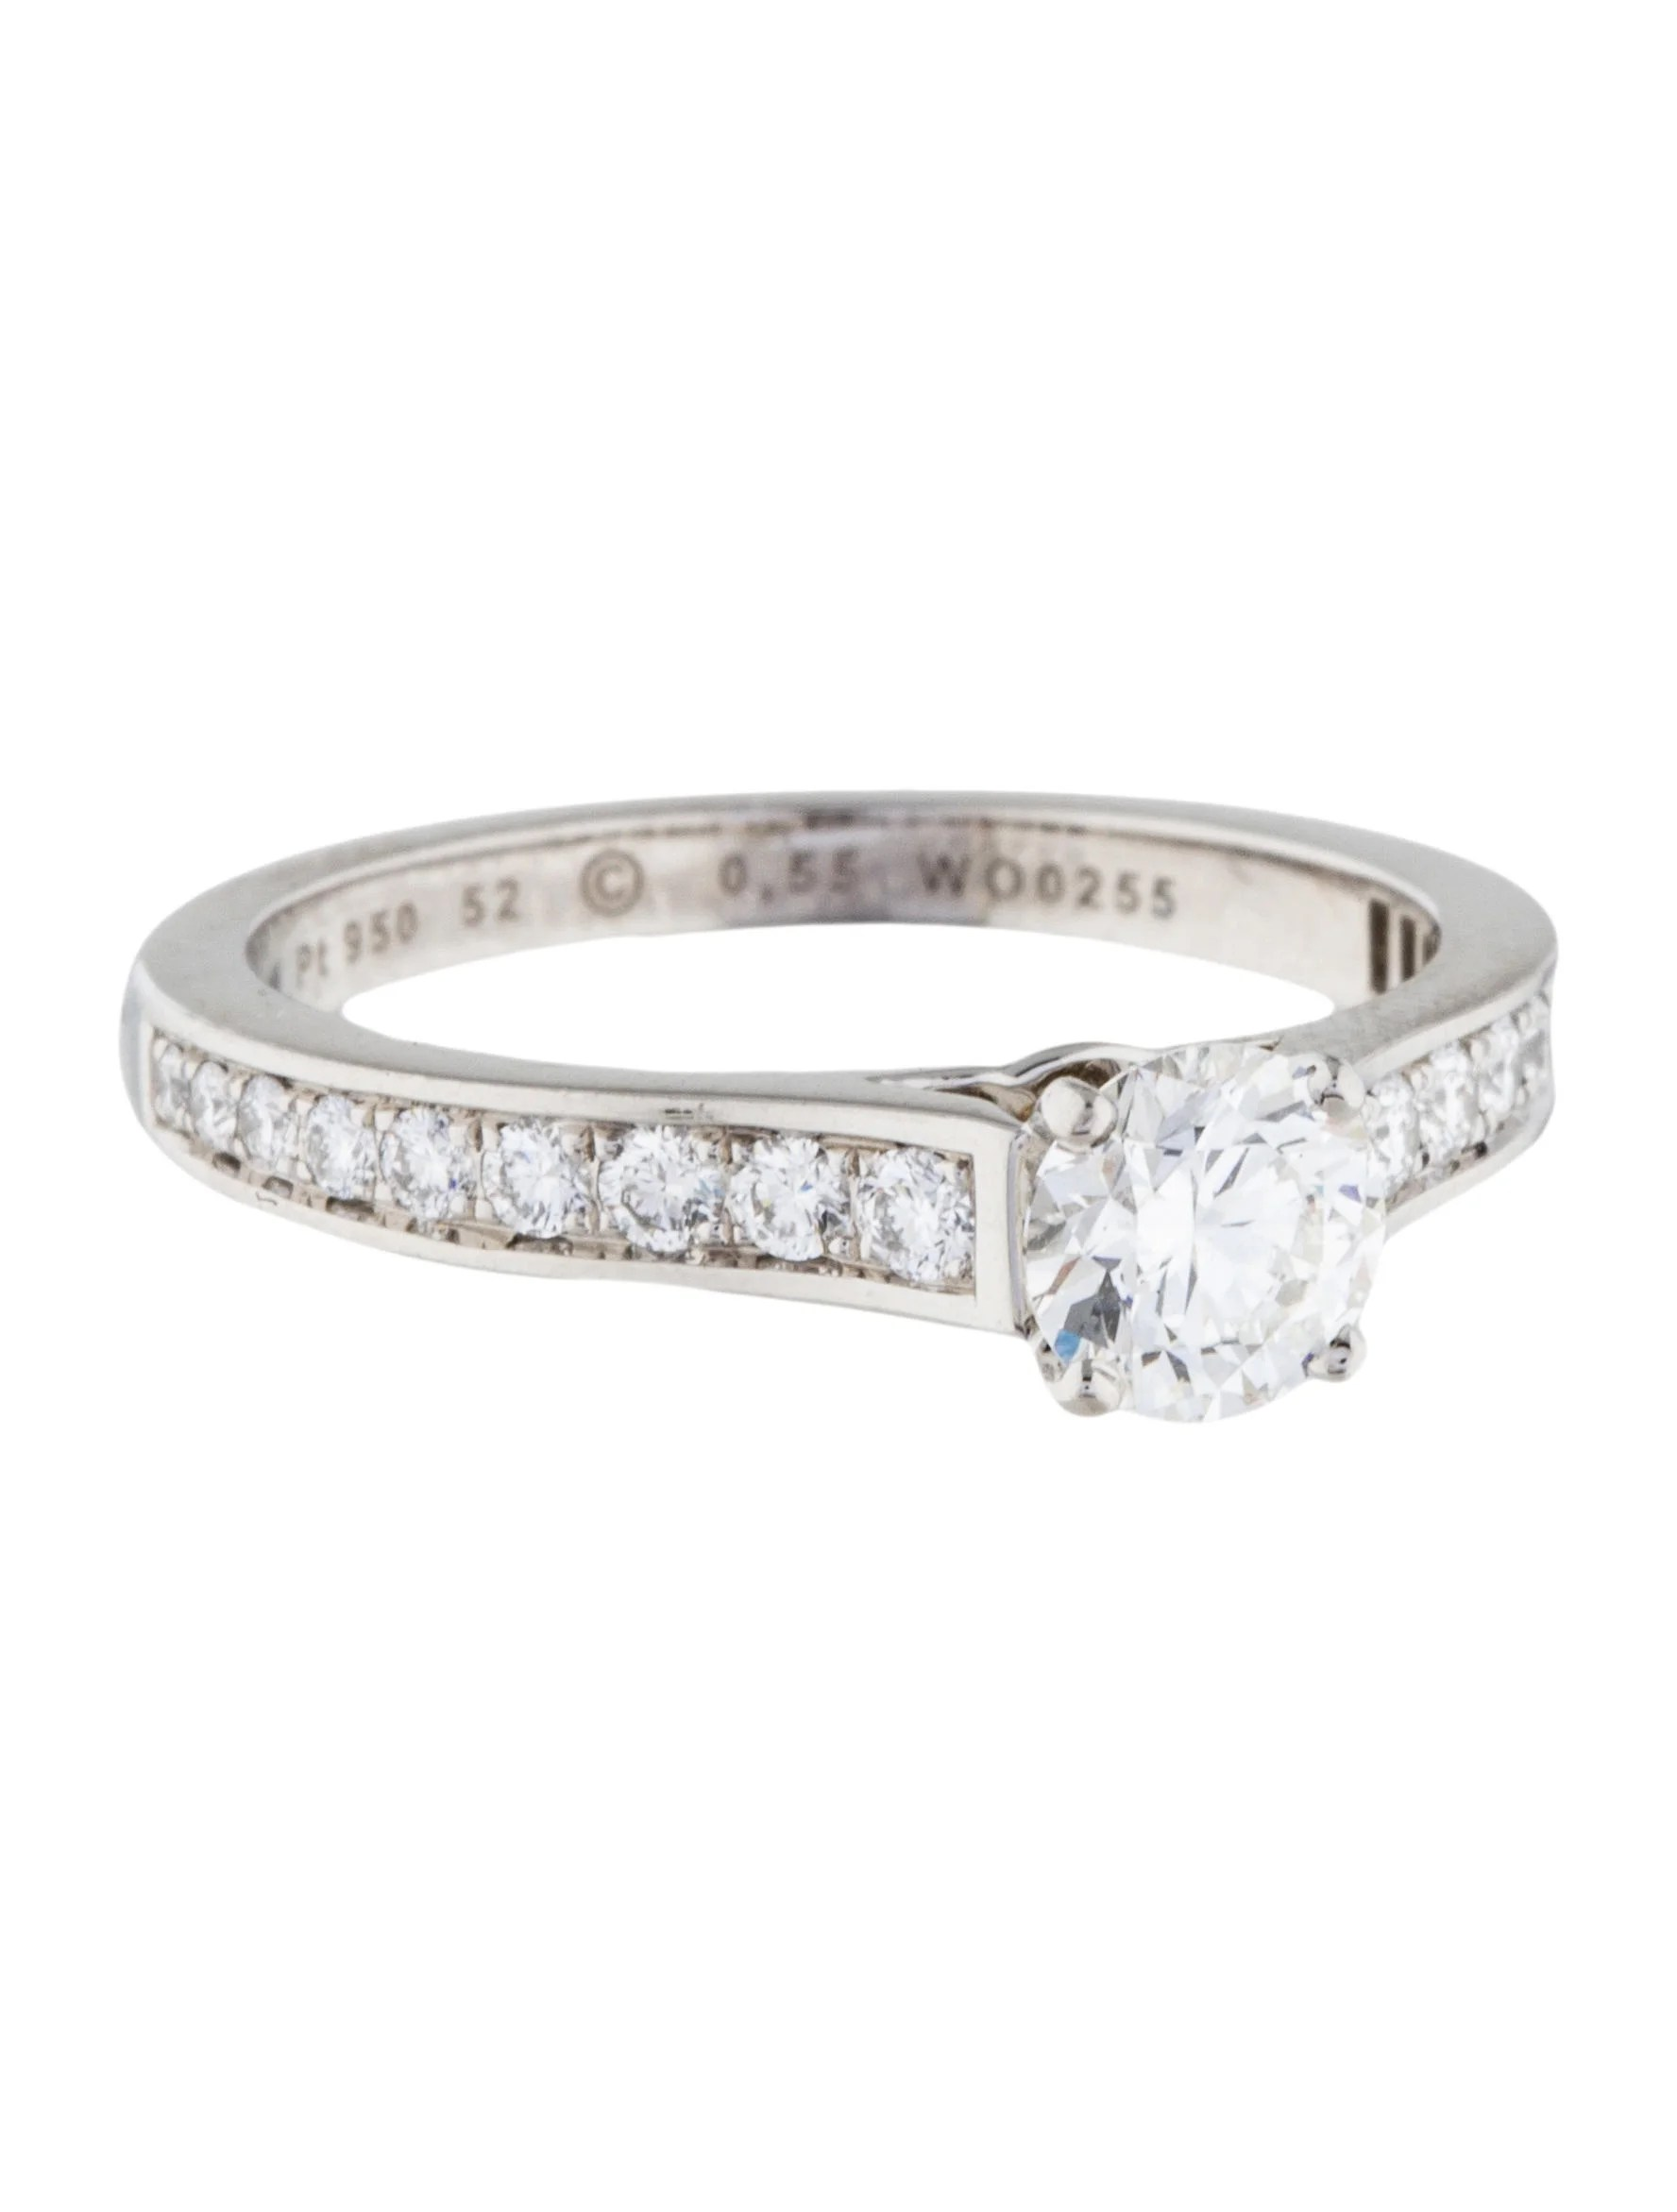 Cartier Platinum Engagement Ring  Rings  CRT25496  The RealReal